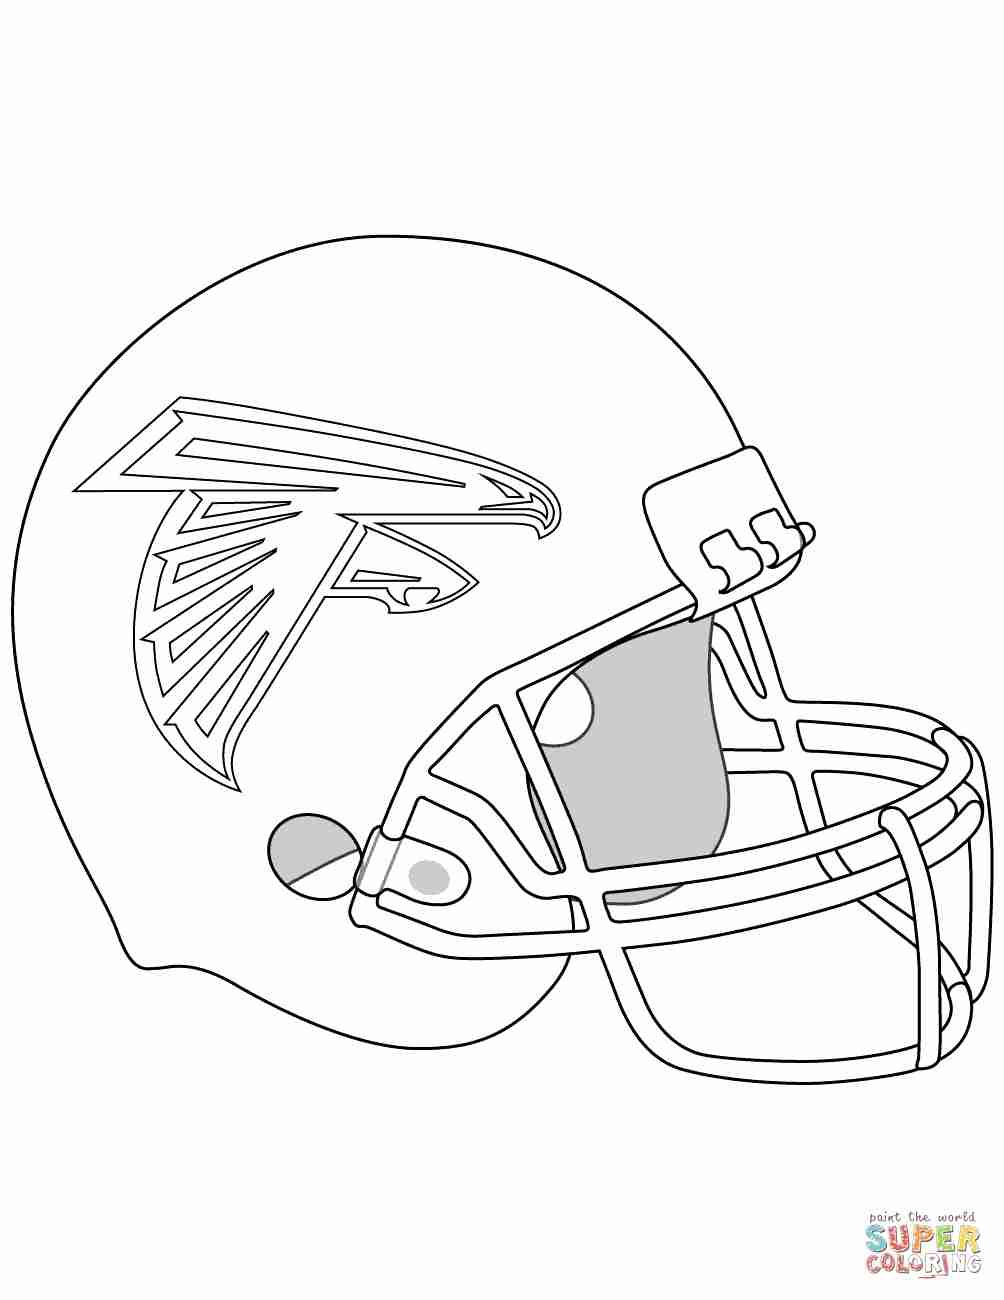 raiders coloring pages oakland raiders coloring pages at getcoloringscom free coloring pages raiders